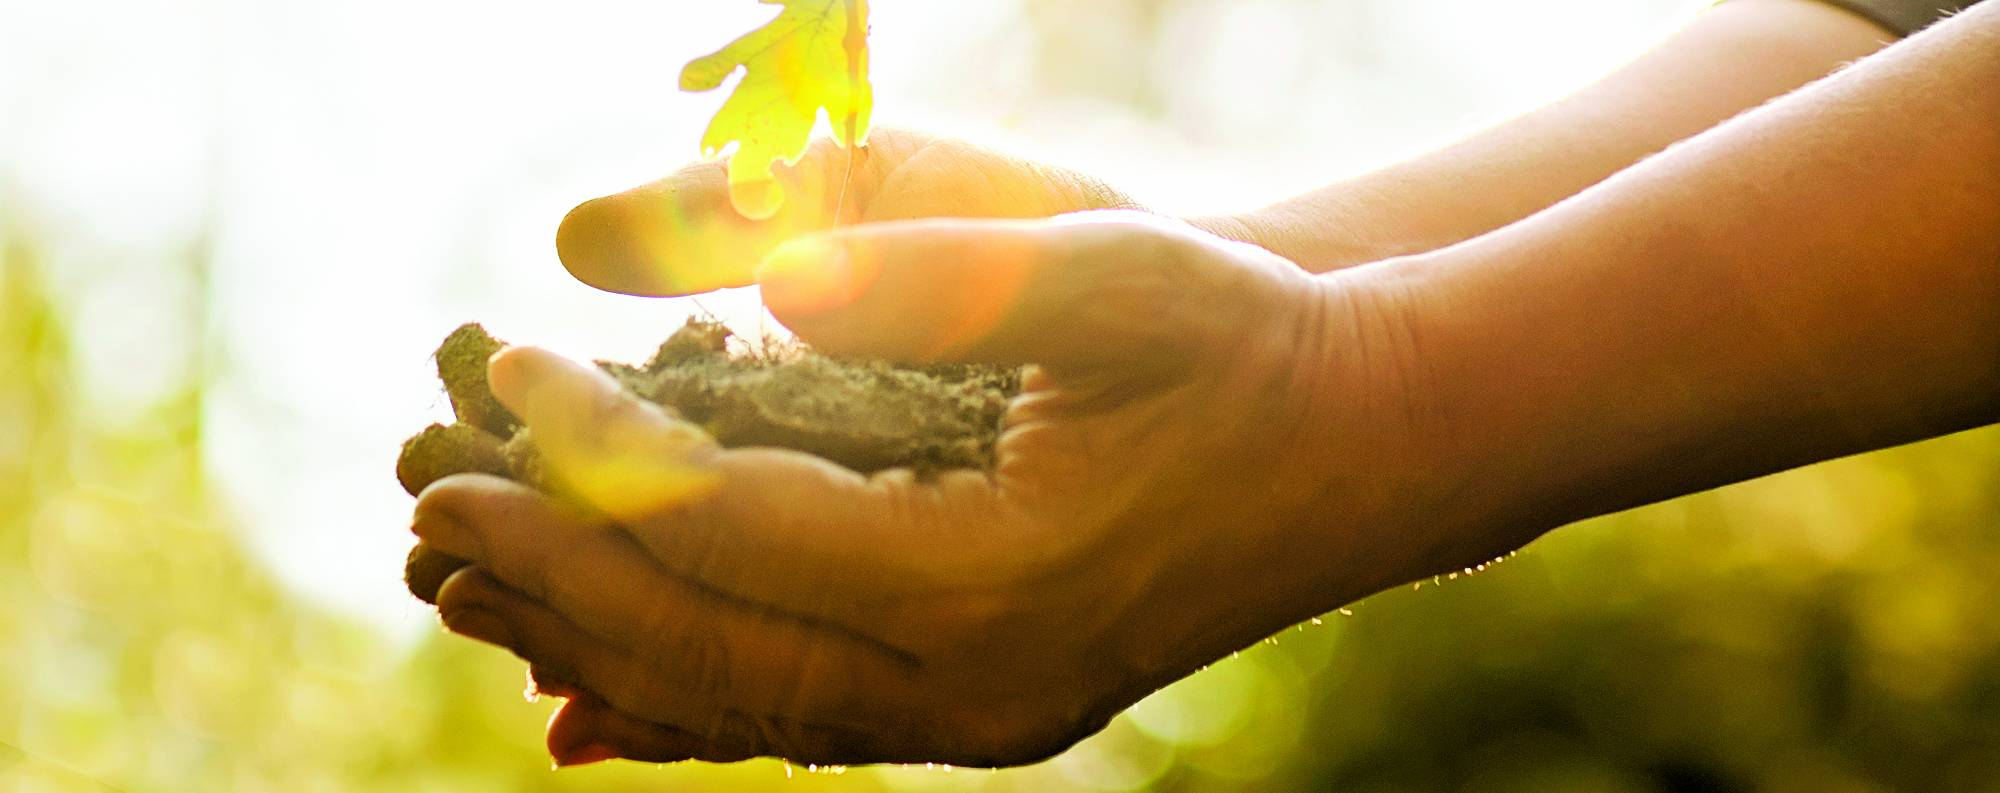 Oak sapling in hands.